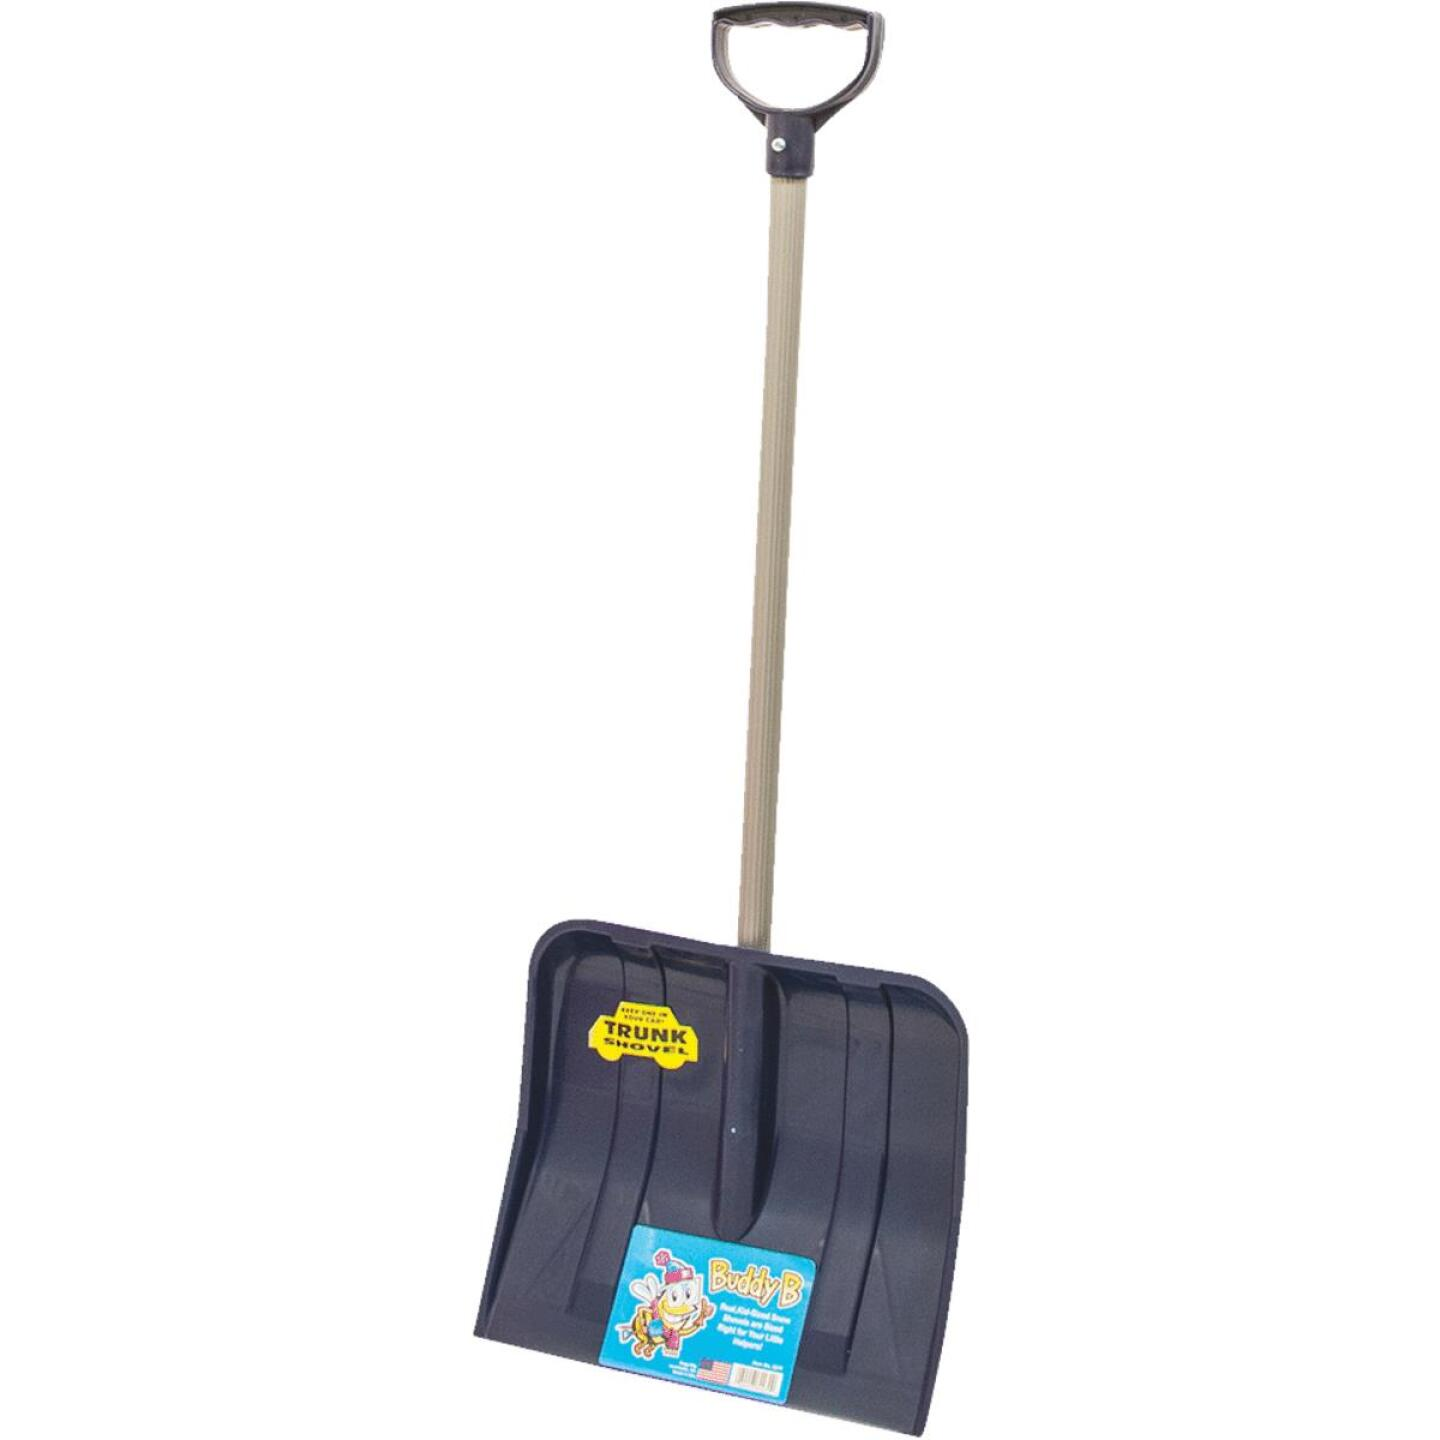 Buddy B 12 In. Poly Childrens Snow Shovel with 24 In. Poly Handle Image 1